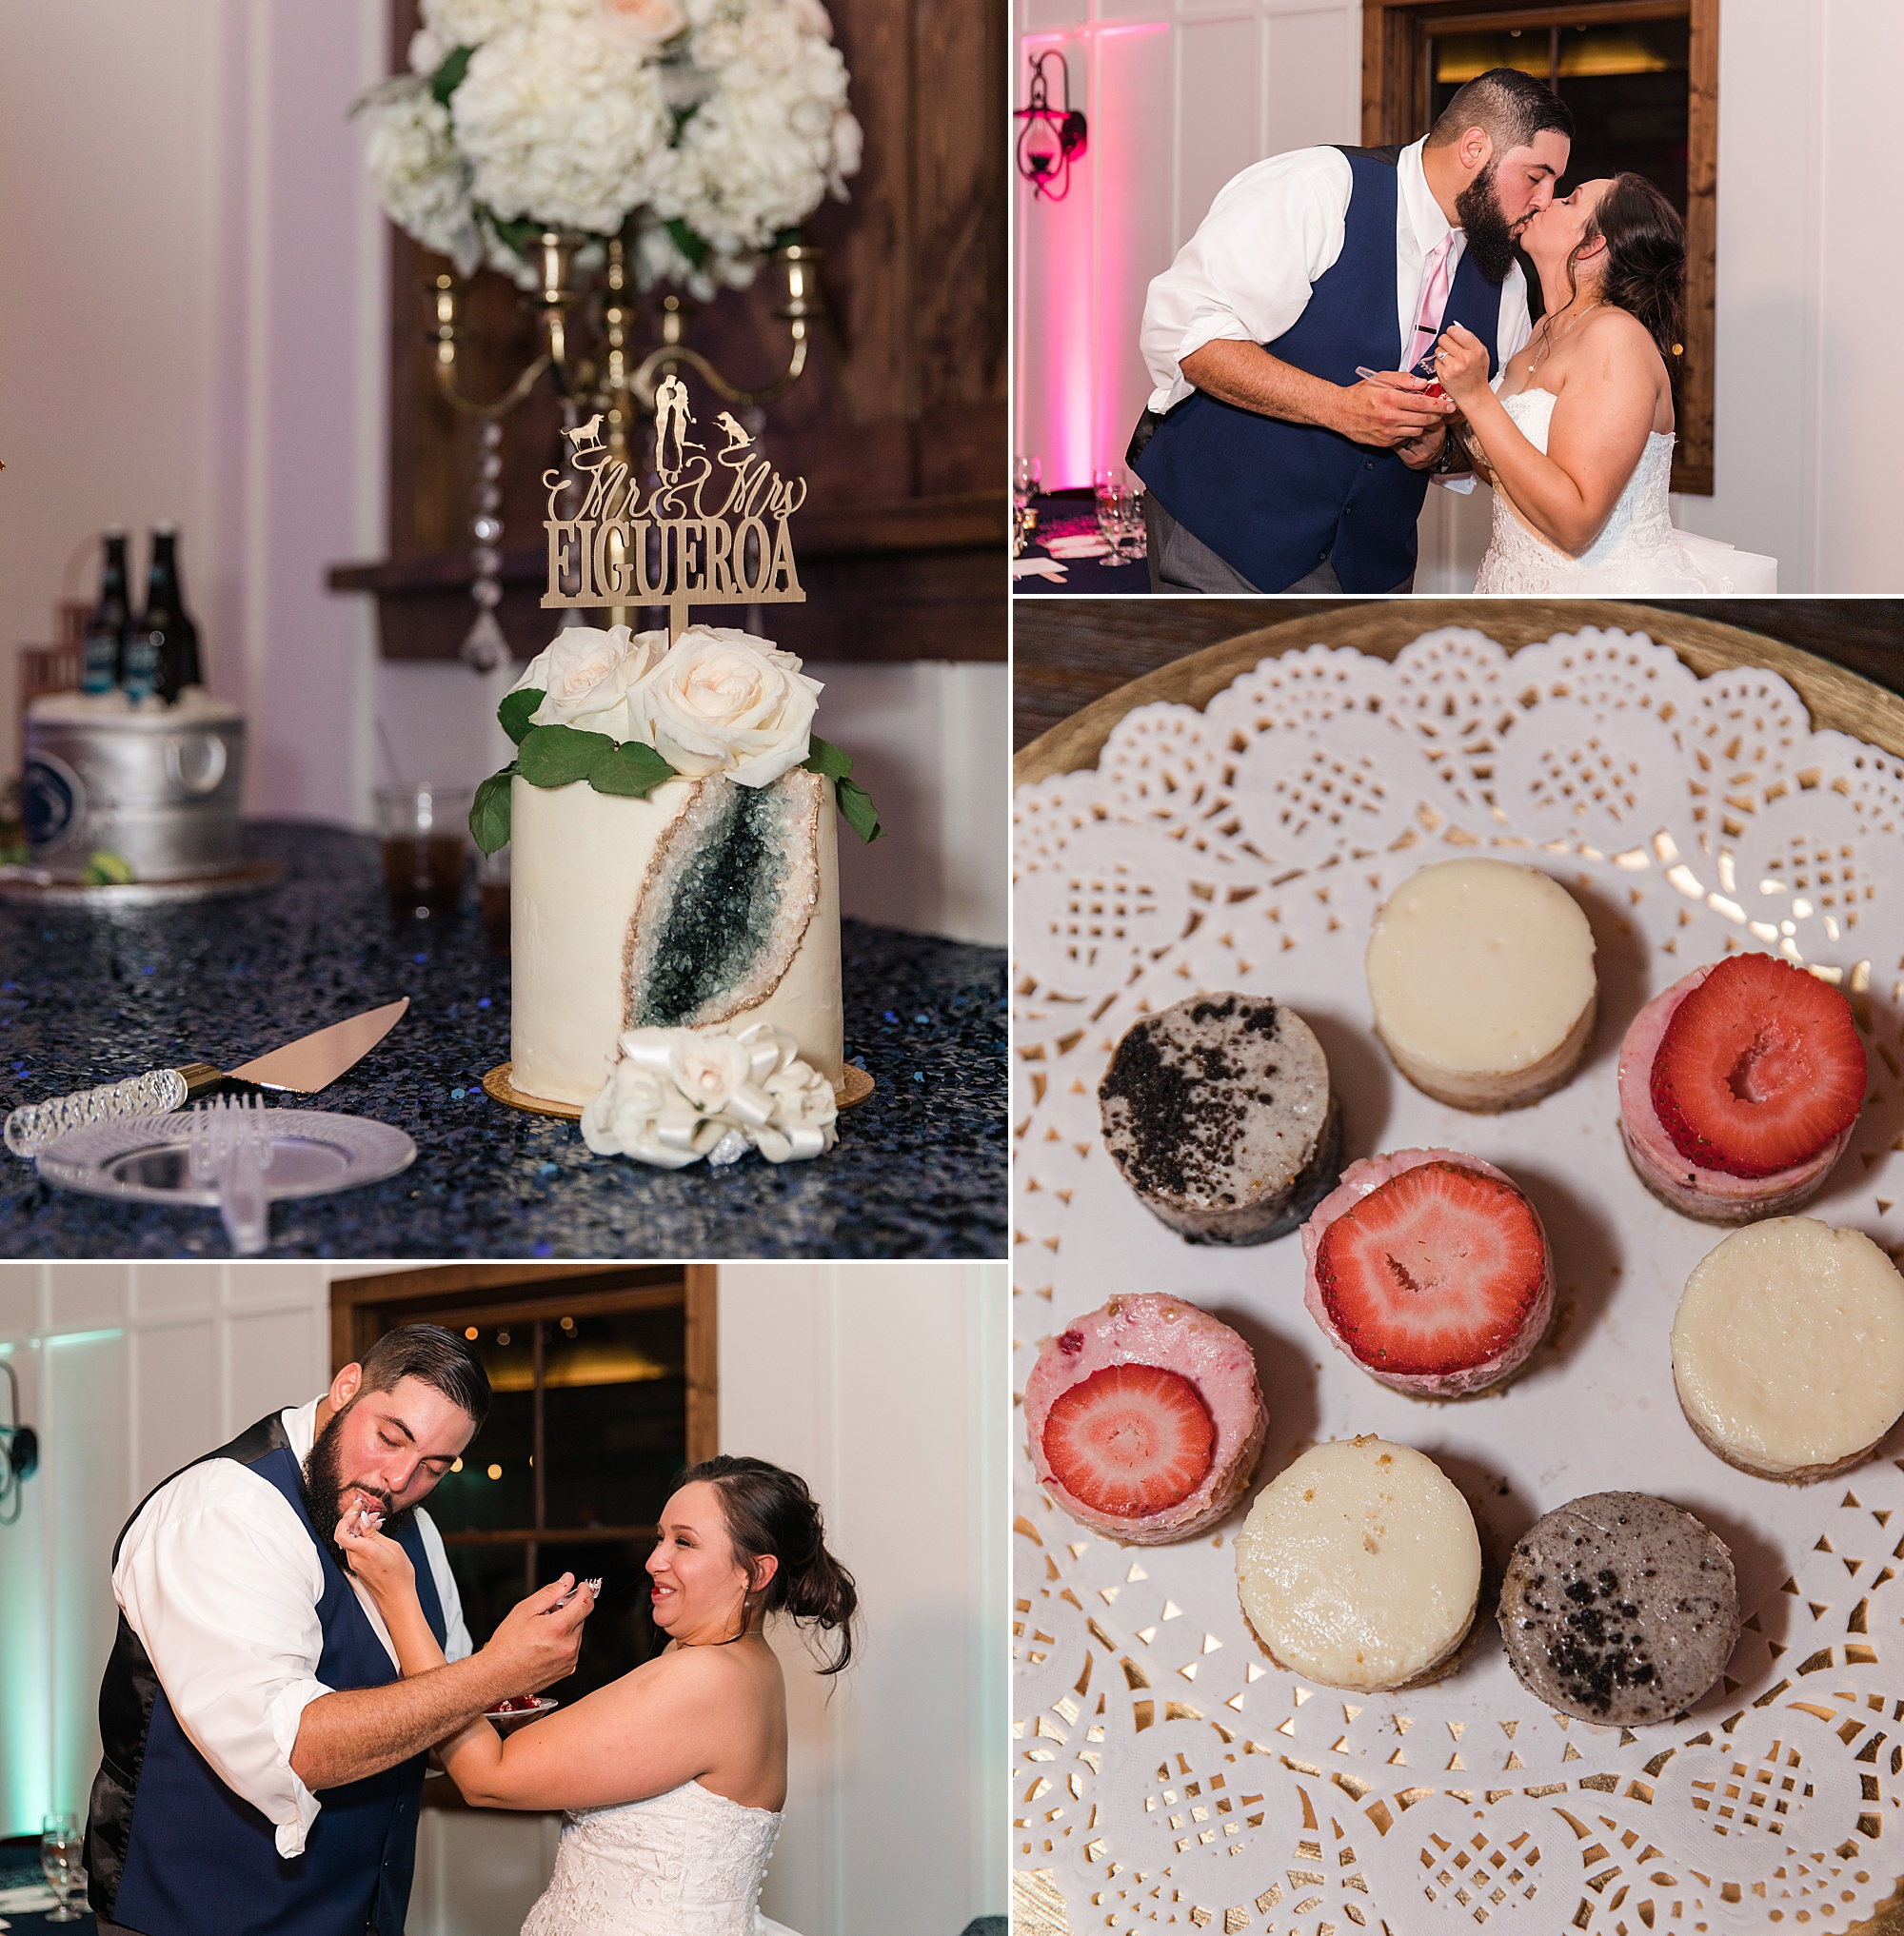 Wedding-Photographer-Bulverde-Texas-Western-Sky-Event-Venue-Carly-Barton-Photography_0079.jpg